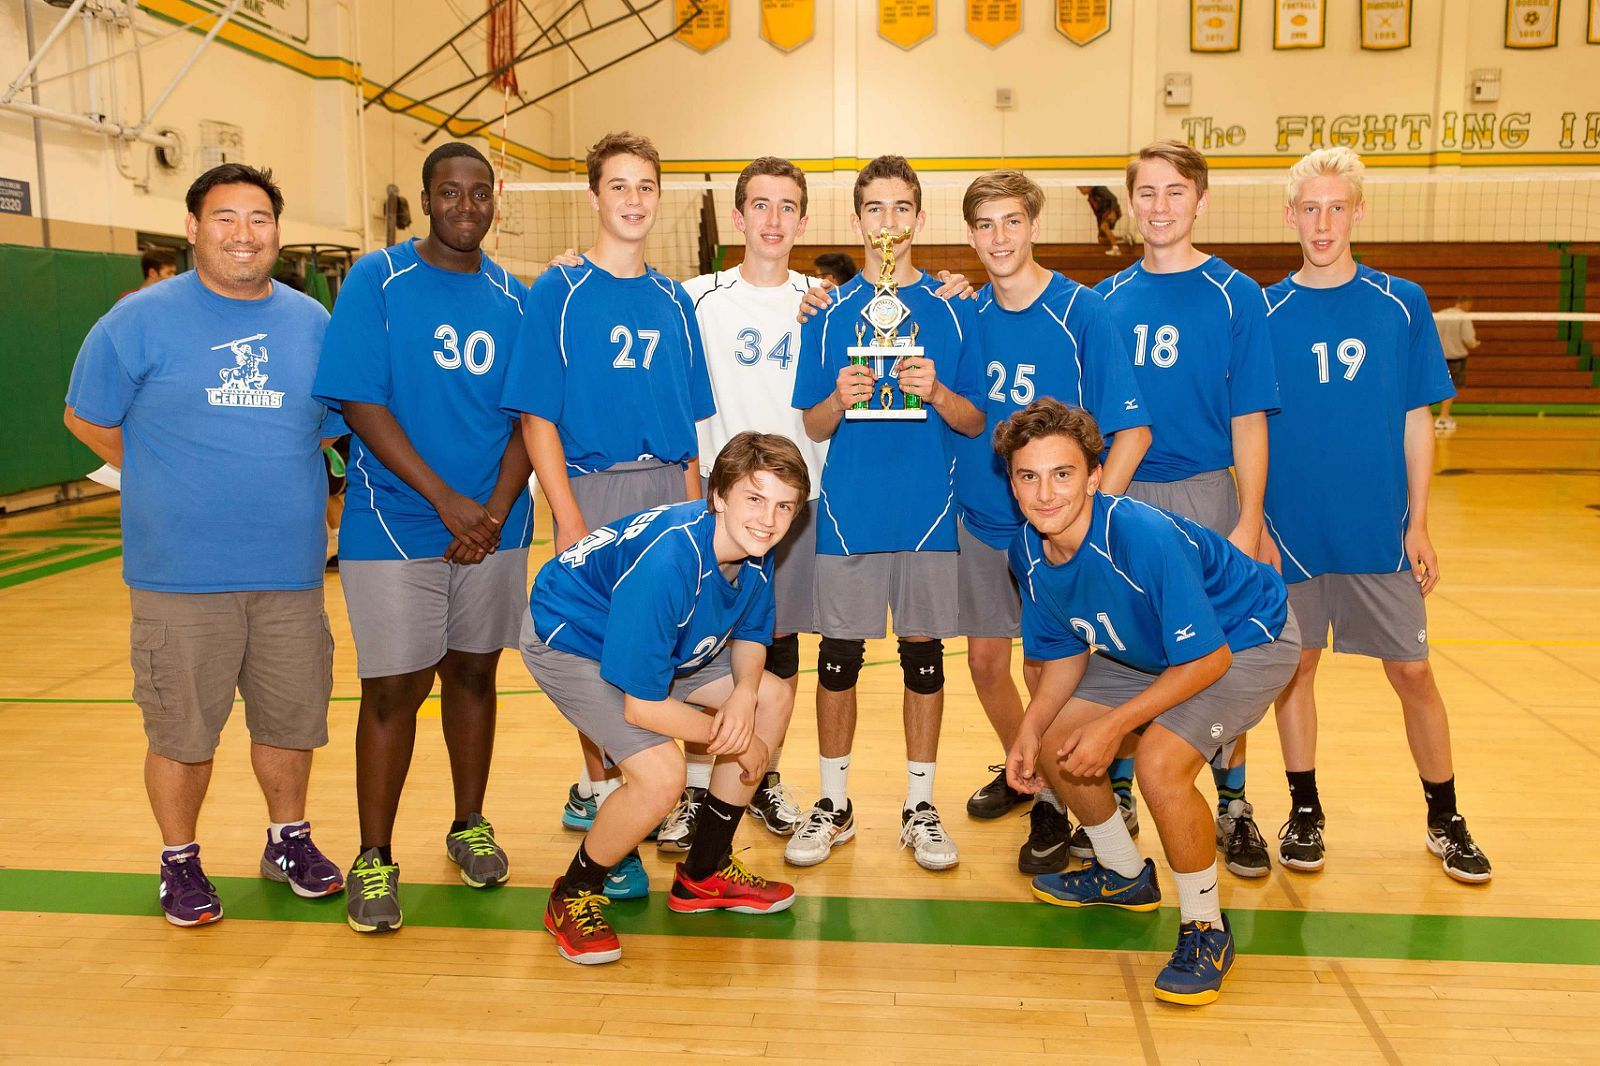 Culver City Hs Boys Varsity Volleyball With Images Culver City Varsity Boys